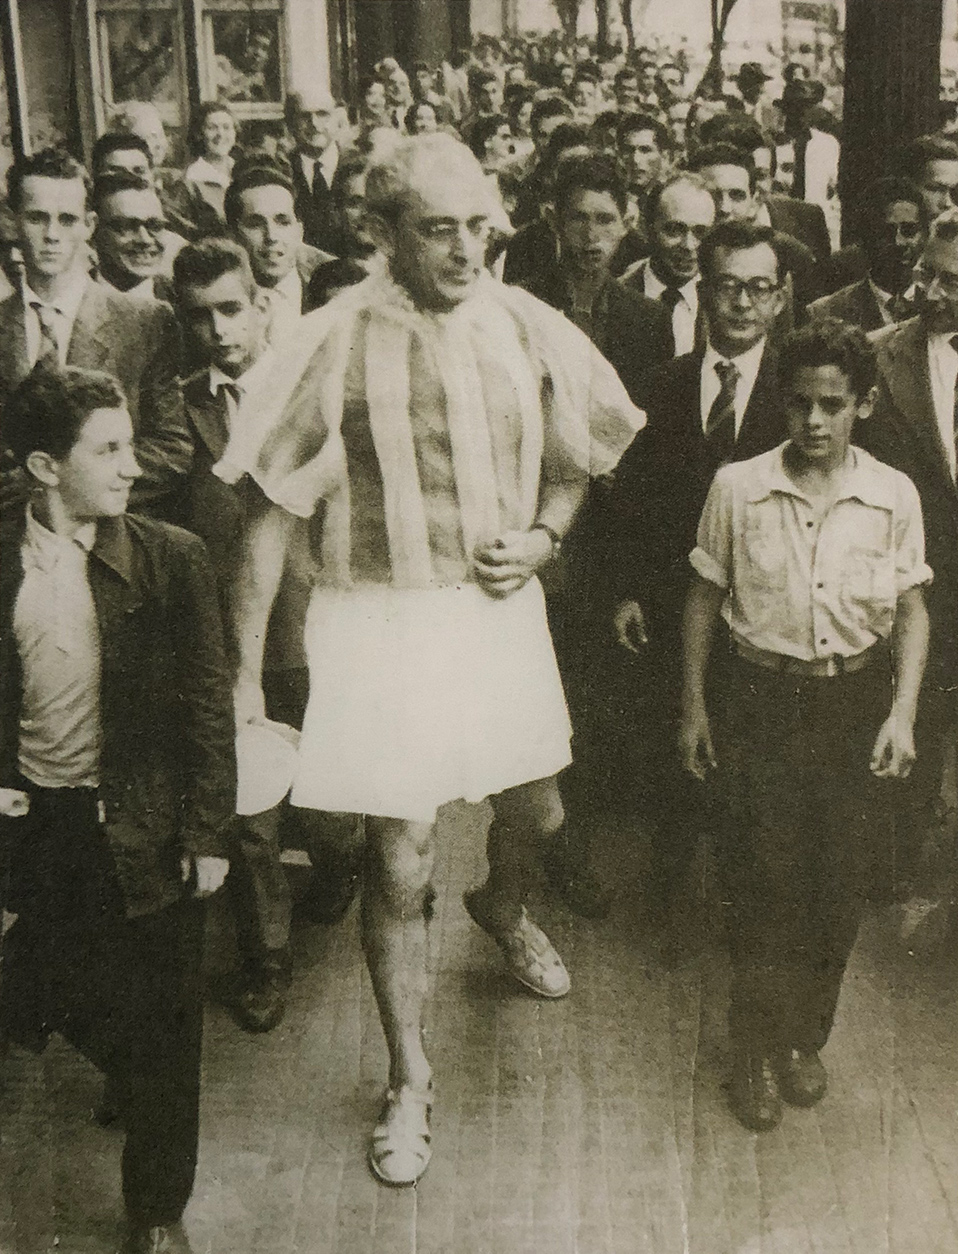 33. Flávio de Carvalho, in his 1956 New Look performing in the streets of São Paulo CEDAE Archives, Universidade de Campinas - UNICAMP - SP